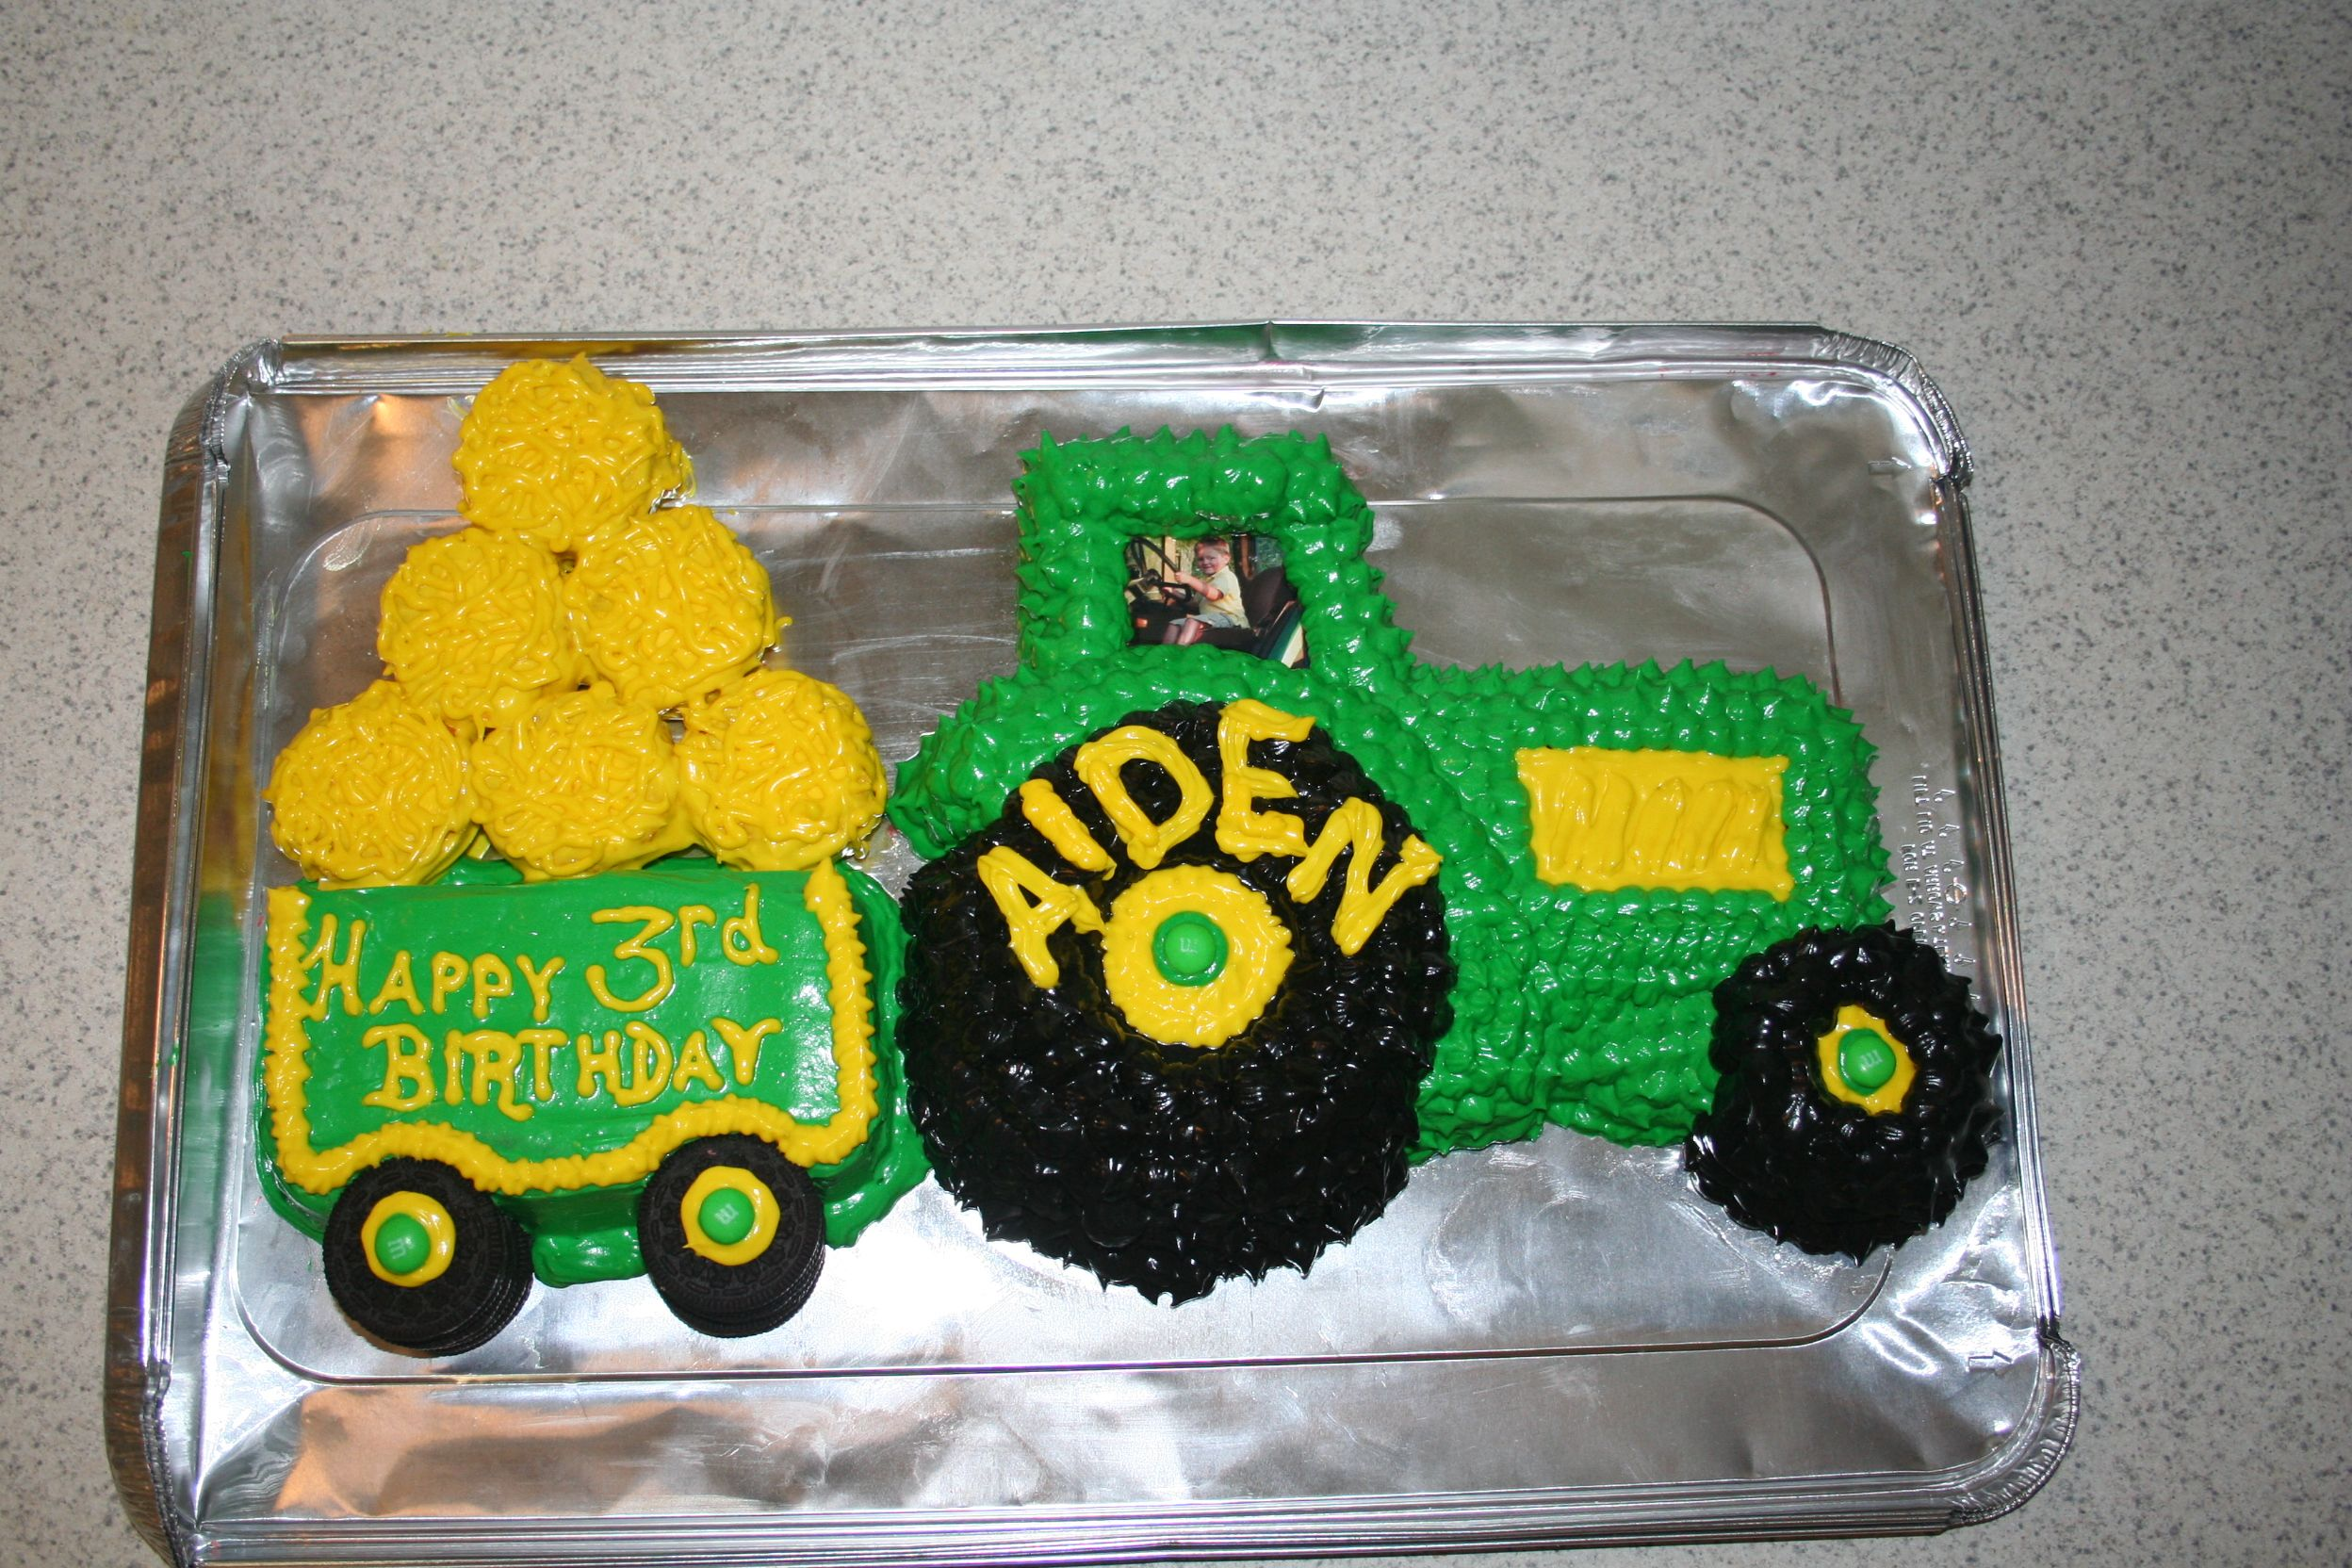 Tractor birthday cakeThis is the first decorative cake I ever made